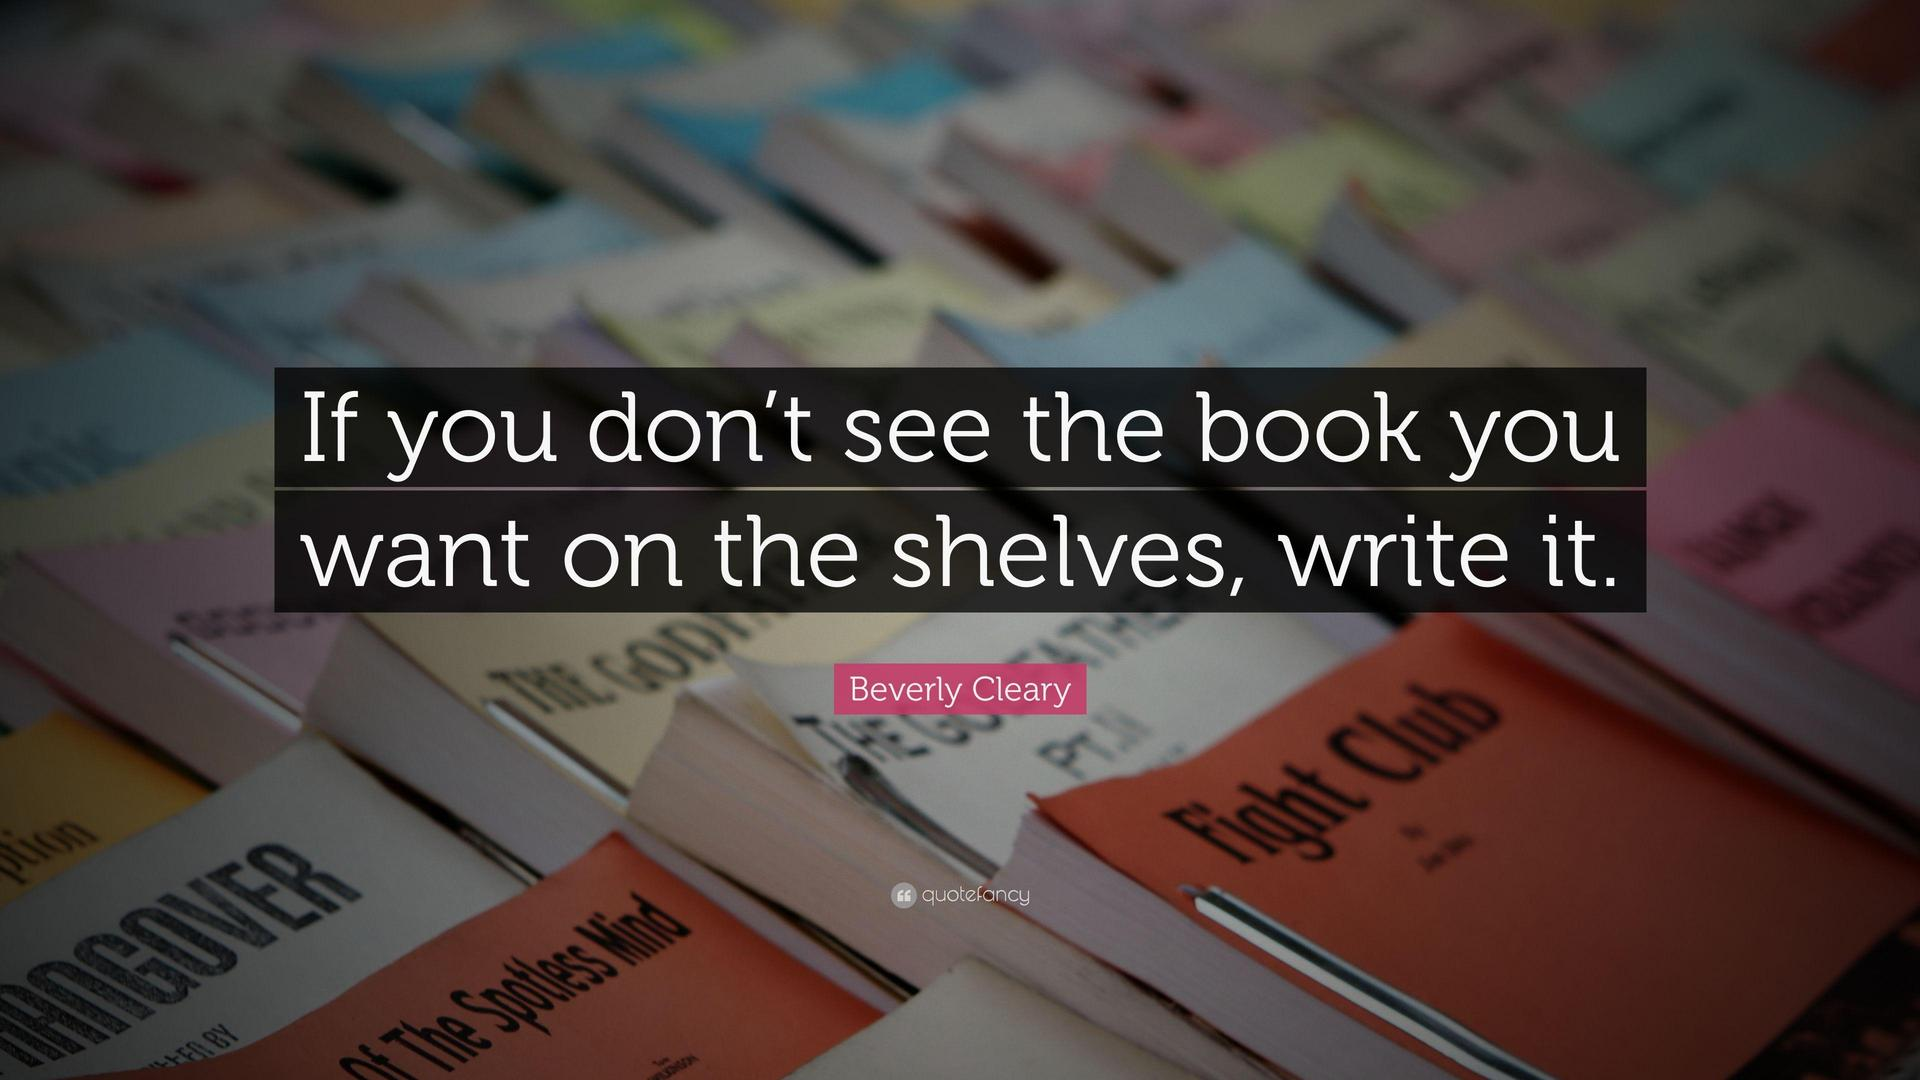 If you don't see a book on the shelf you want, write it